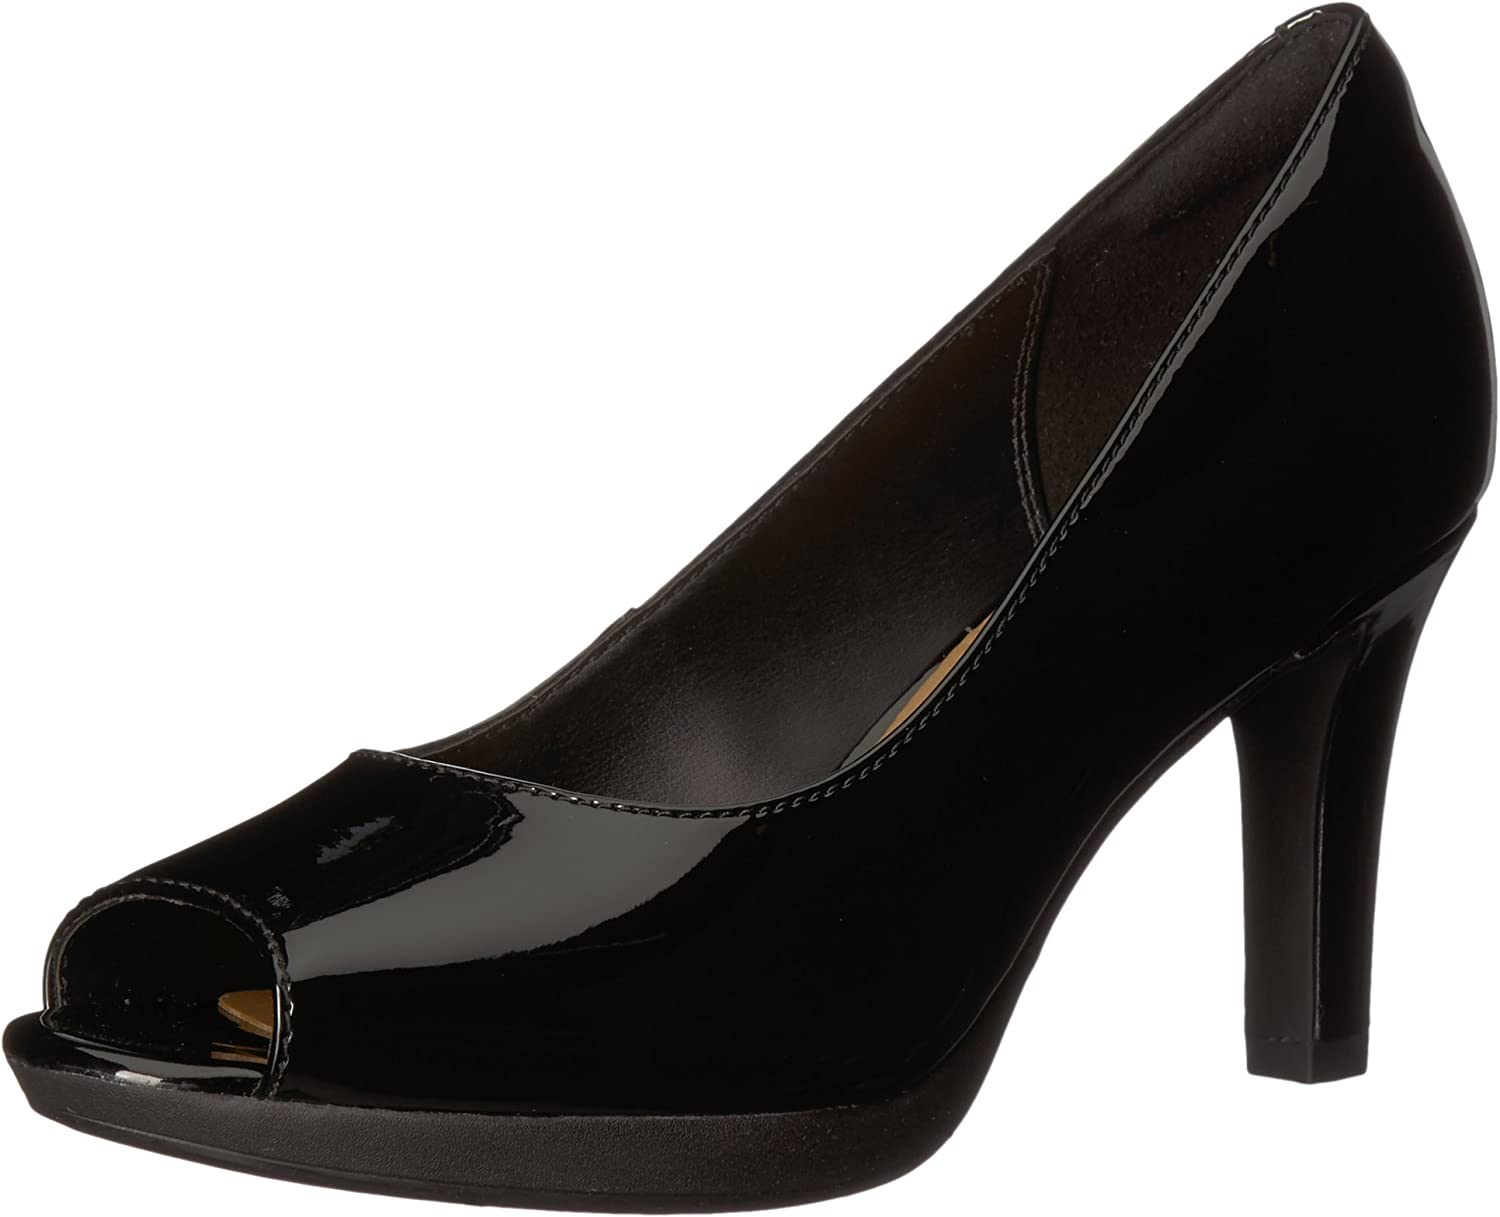 Clarks Women's Adriel Phyliss Pumps